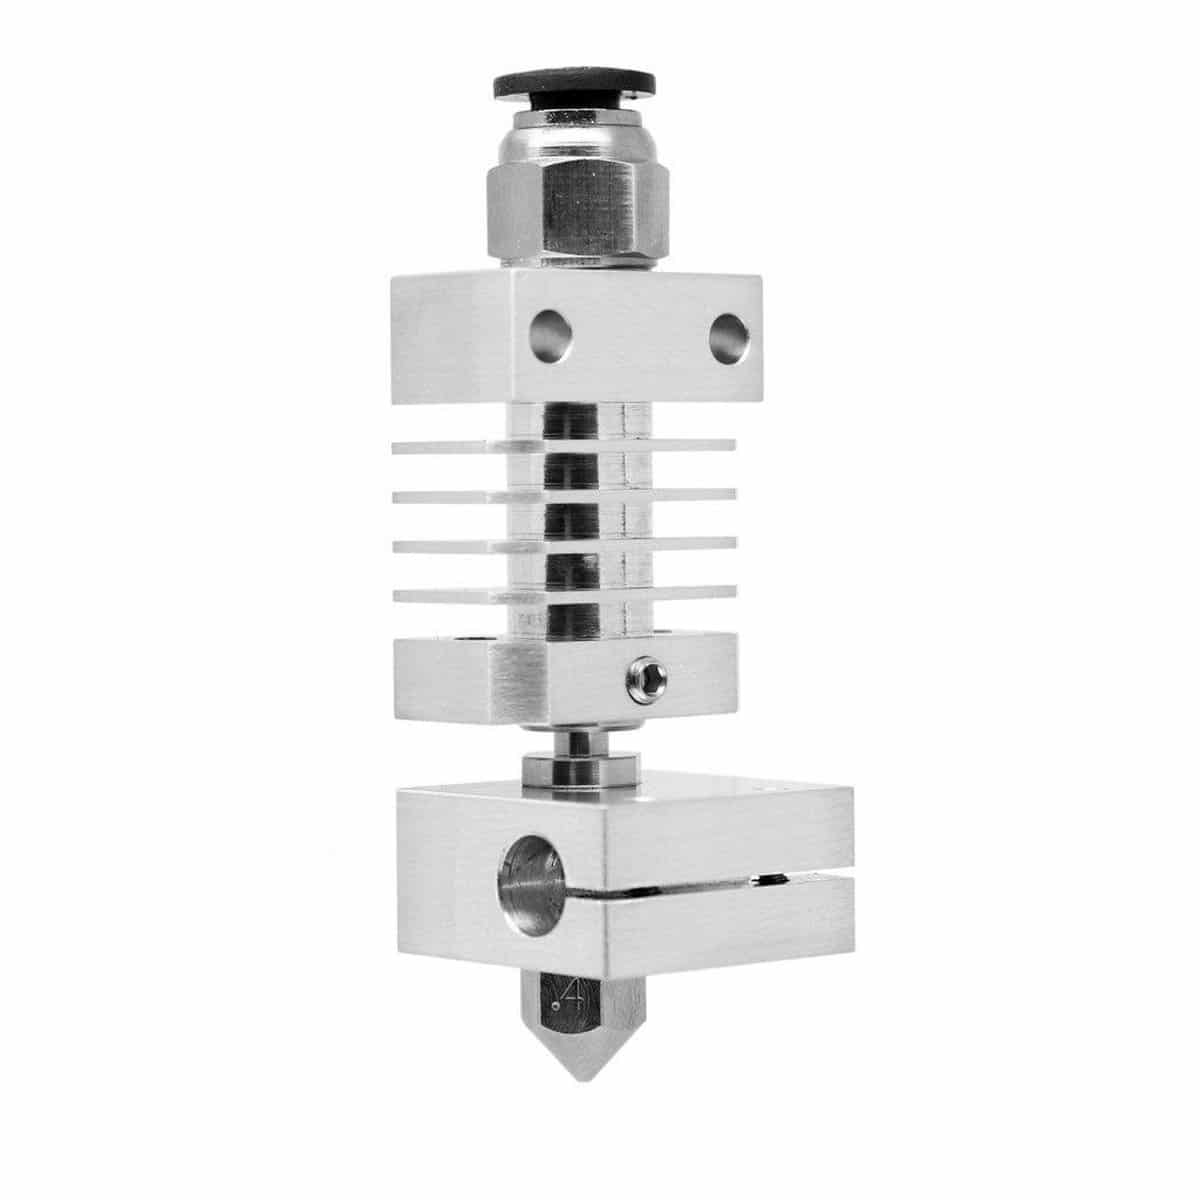 Image of Micro Swiss All Metal Hotend Kit with Heater Block